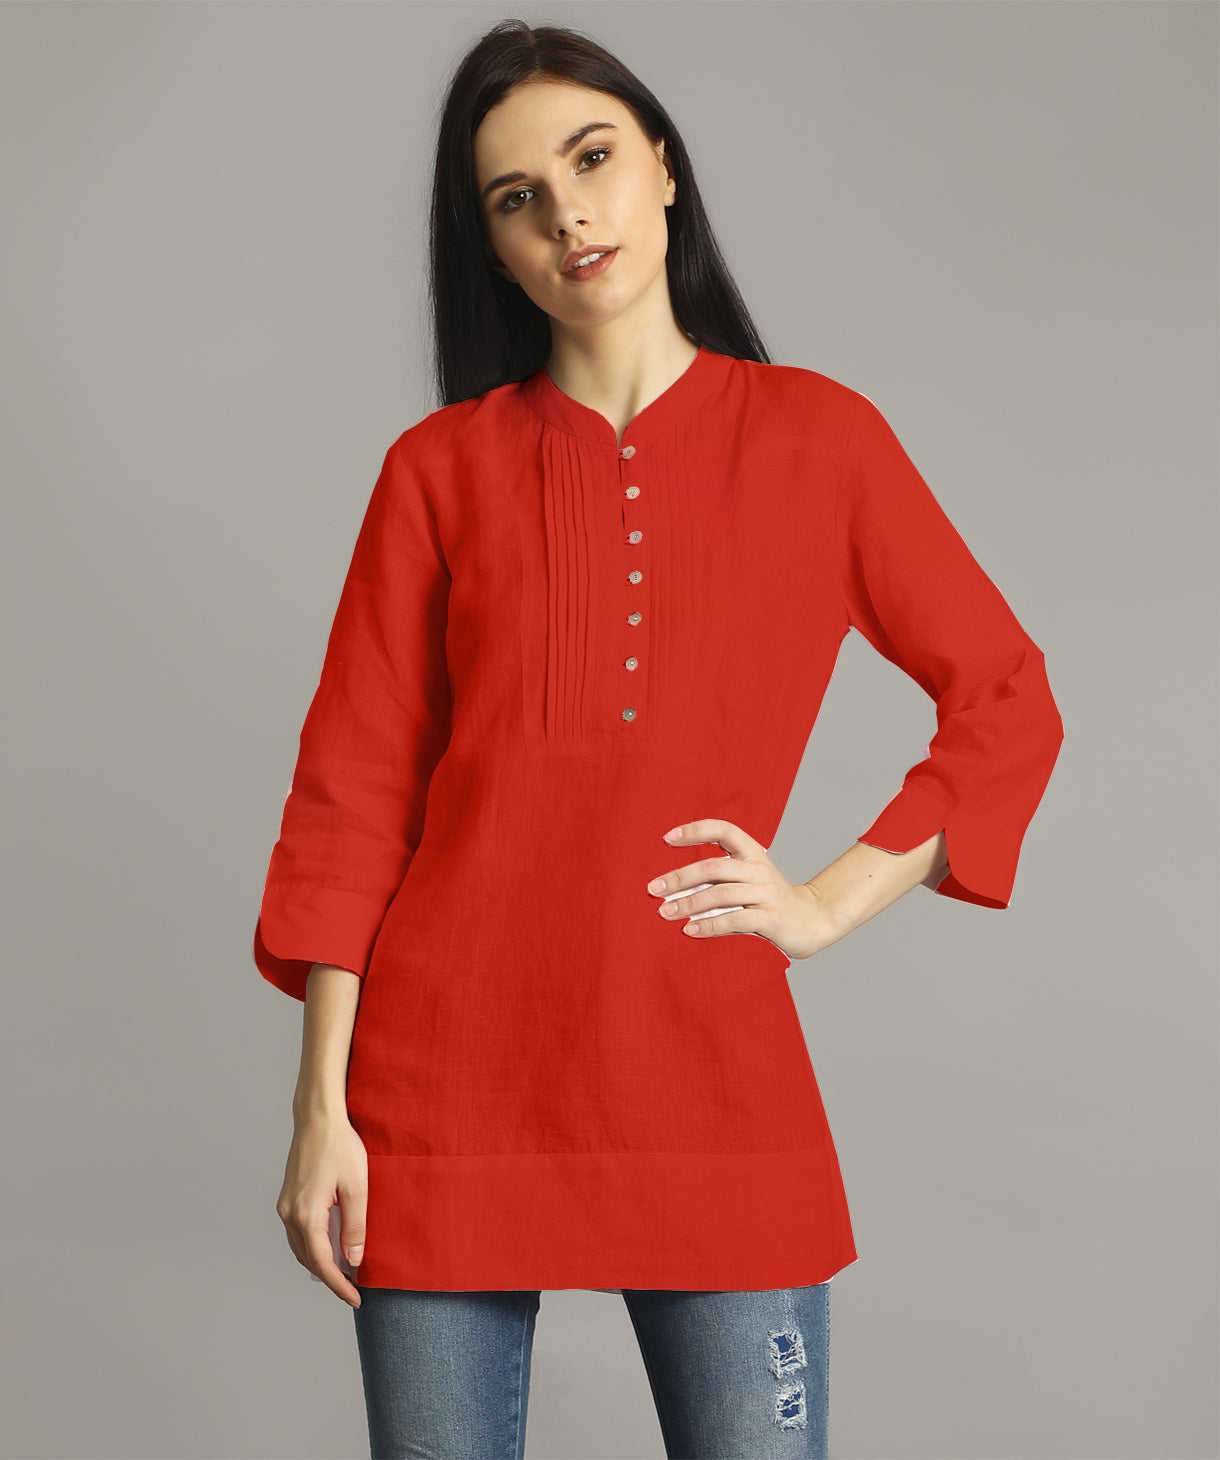 Uptownie Plus Orange Mandarin Pleated Neck Tunic. FLAT 200 OFF